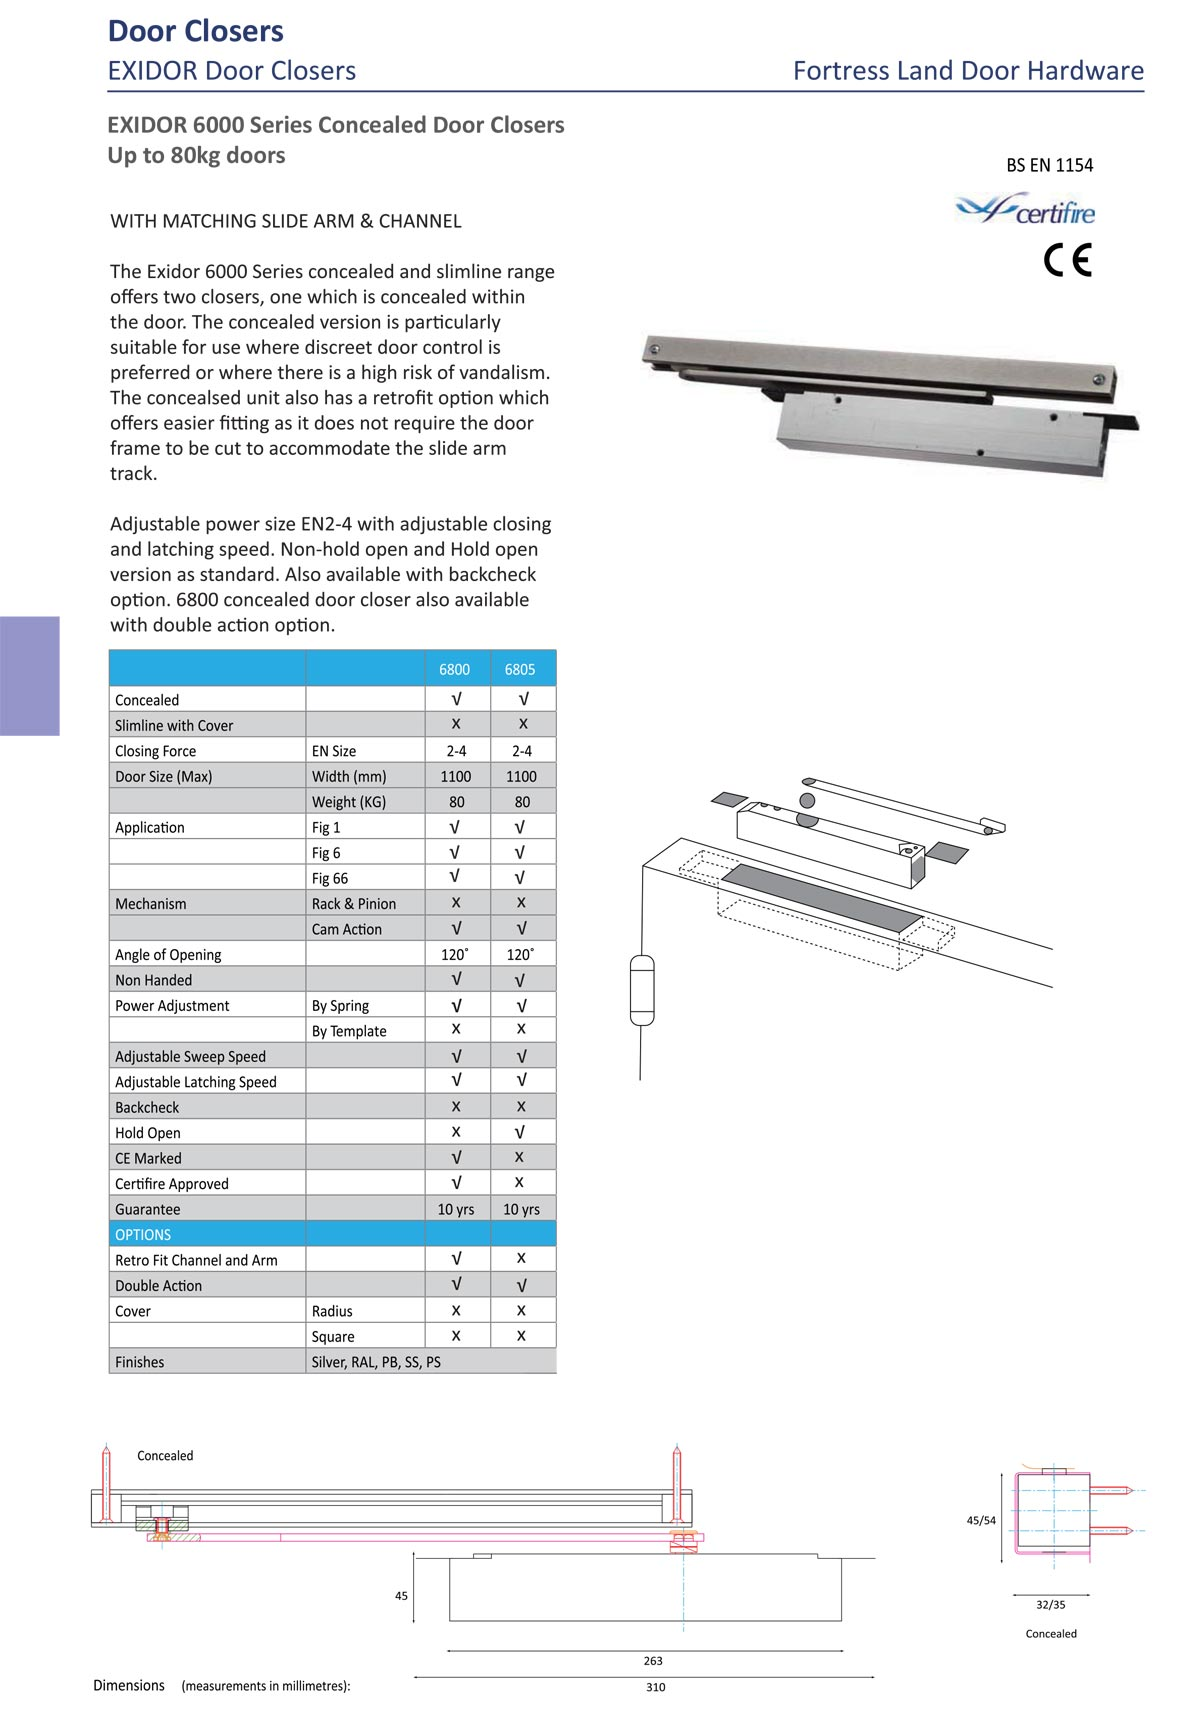 door closer, surface mounted door closer, concealed door closer, ASSA ABLOY door closer, kg door closer, standard door closer, 30 40 50 60 70 80 90 100 110 120 130 140 150 160 kg door closer, door closer stopper, hold open door closer, sliding arm door closer, durable door closer, Fortress Land Security Company Yangon, Myanmar